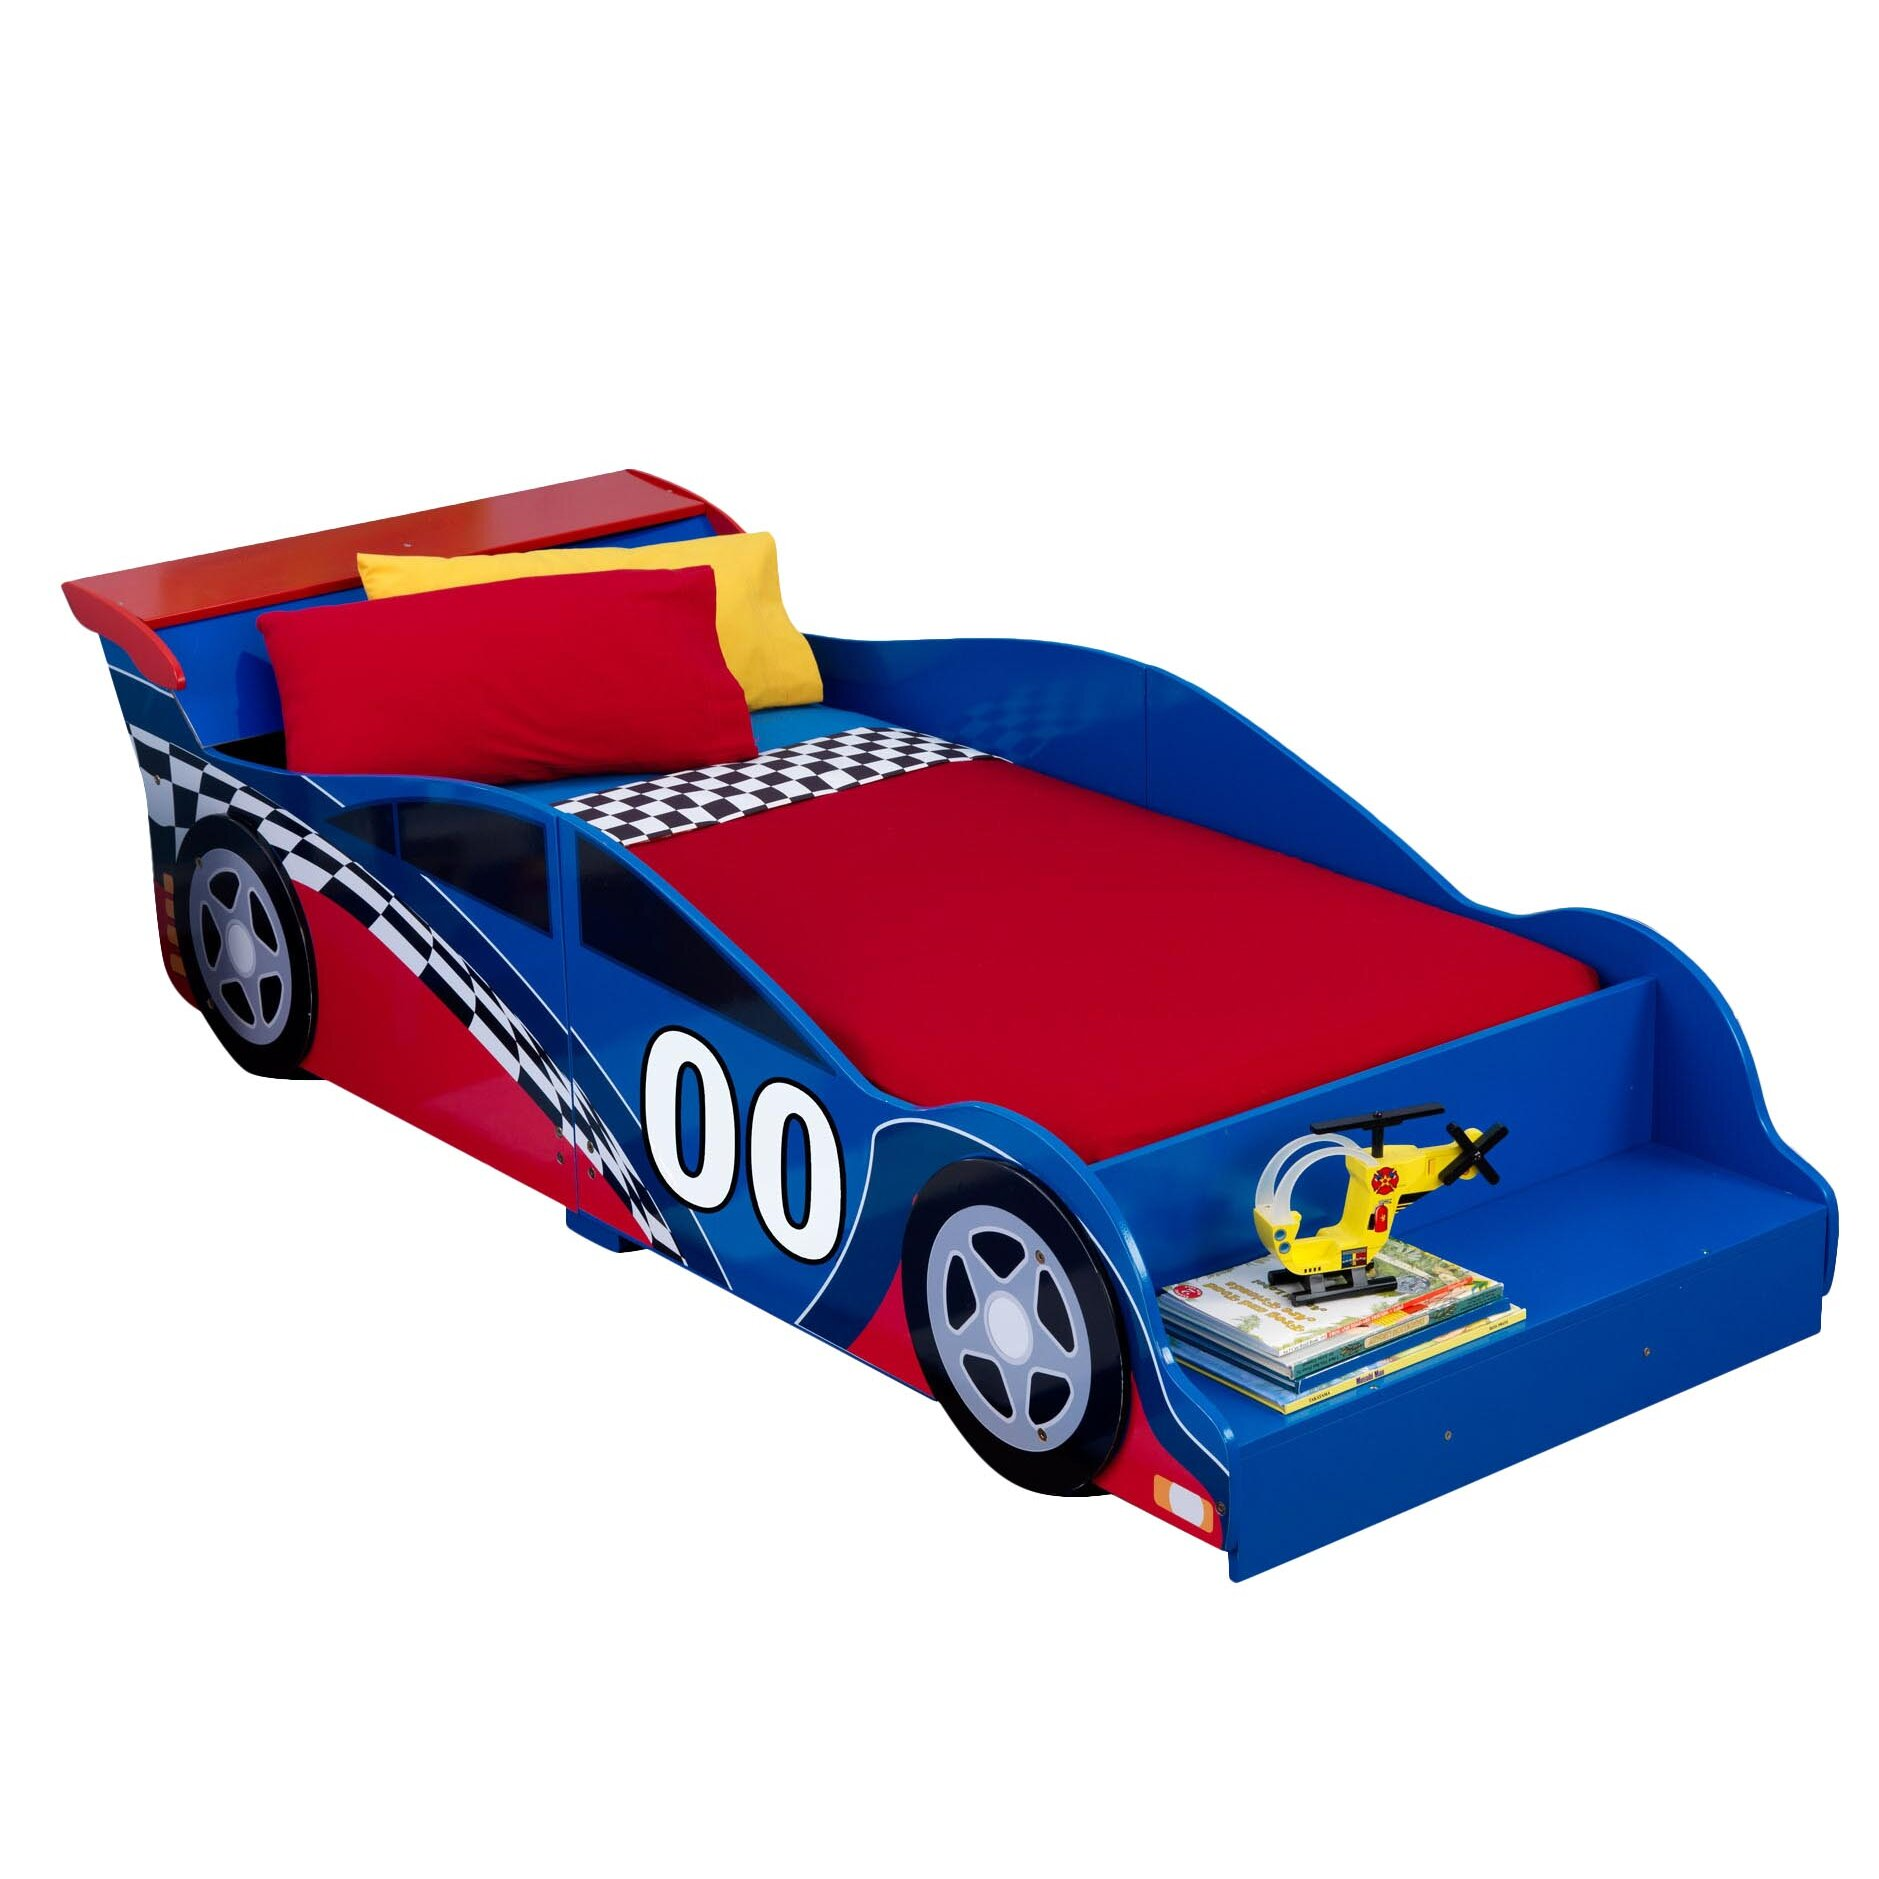 Car beds for boys twin - Kidkraft Racecar Toddler Car Bed